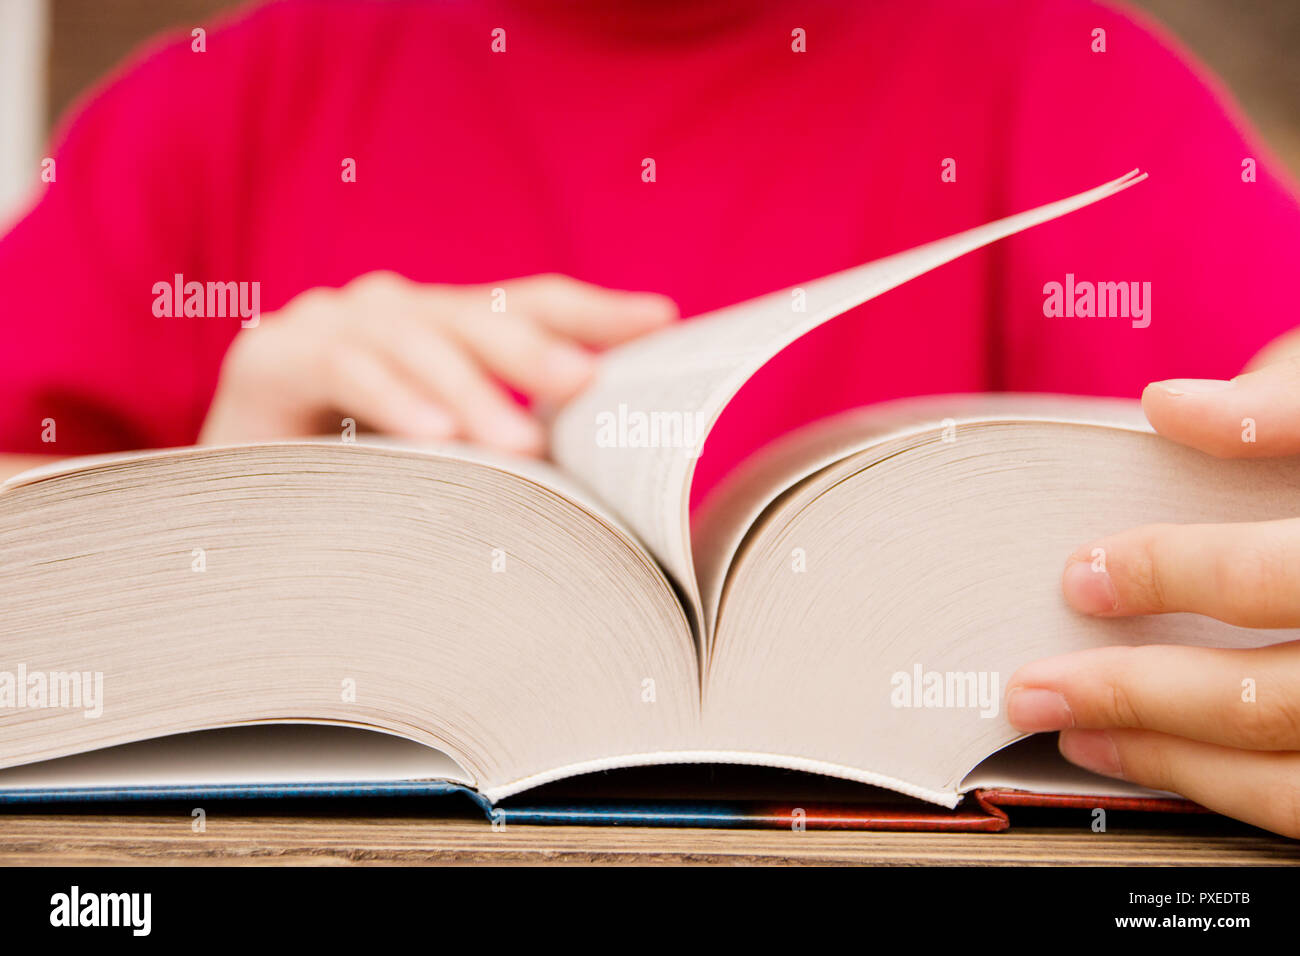 Turn The Page High Resolution Stock Photography and Images - Alamy